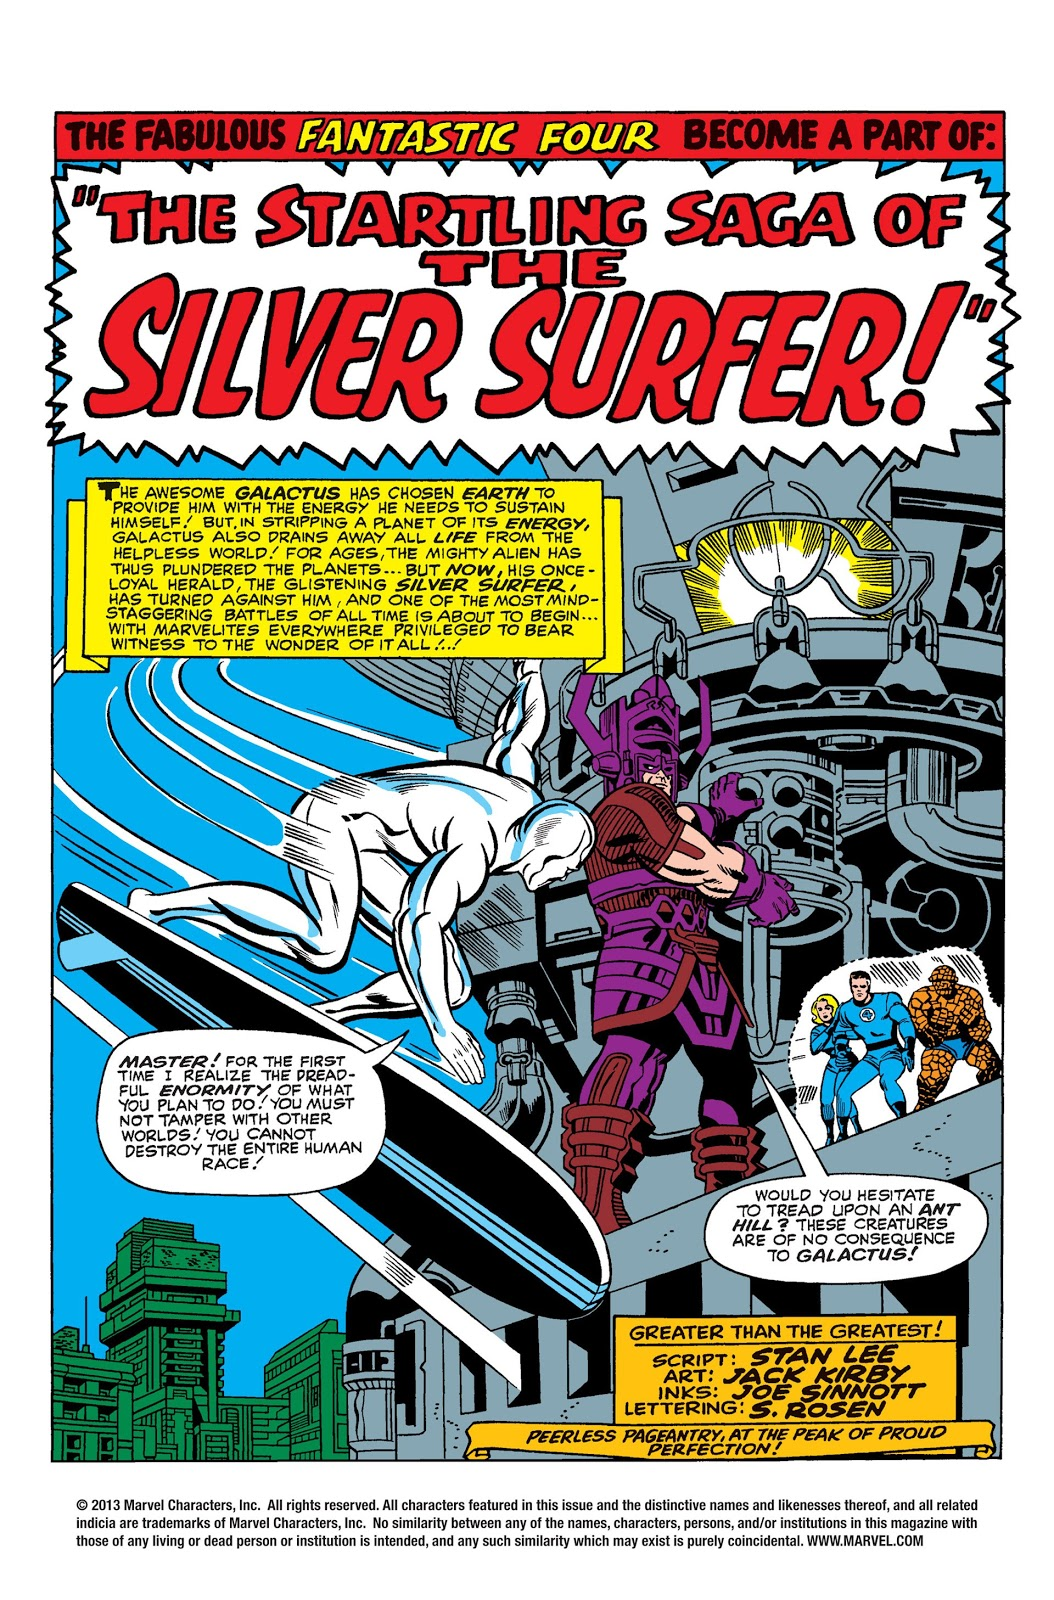 In 'Fantastic Four' (1966) #50, Silver Surfer opposes Galactus as he prepares to activate his elemental converter.